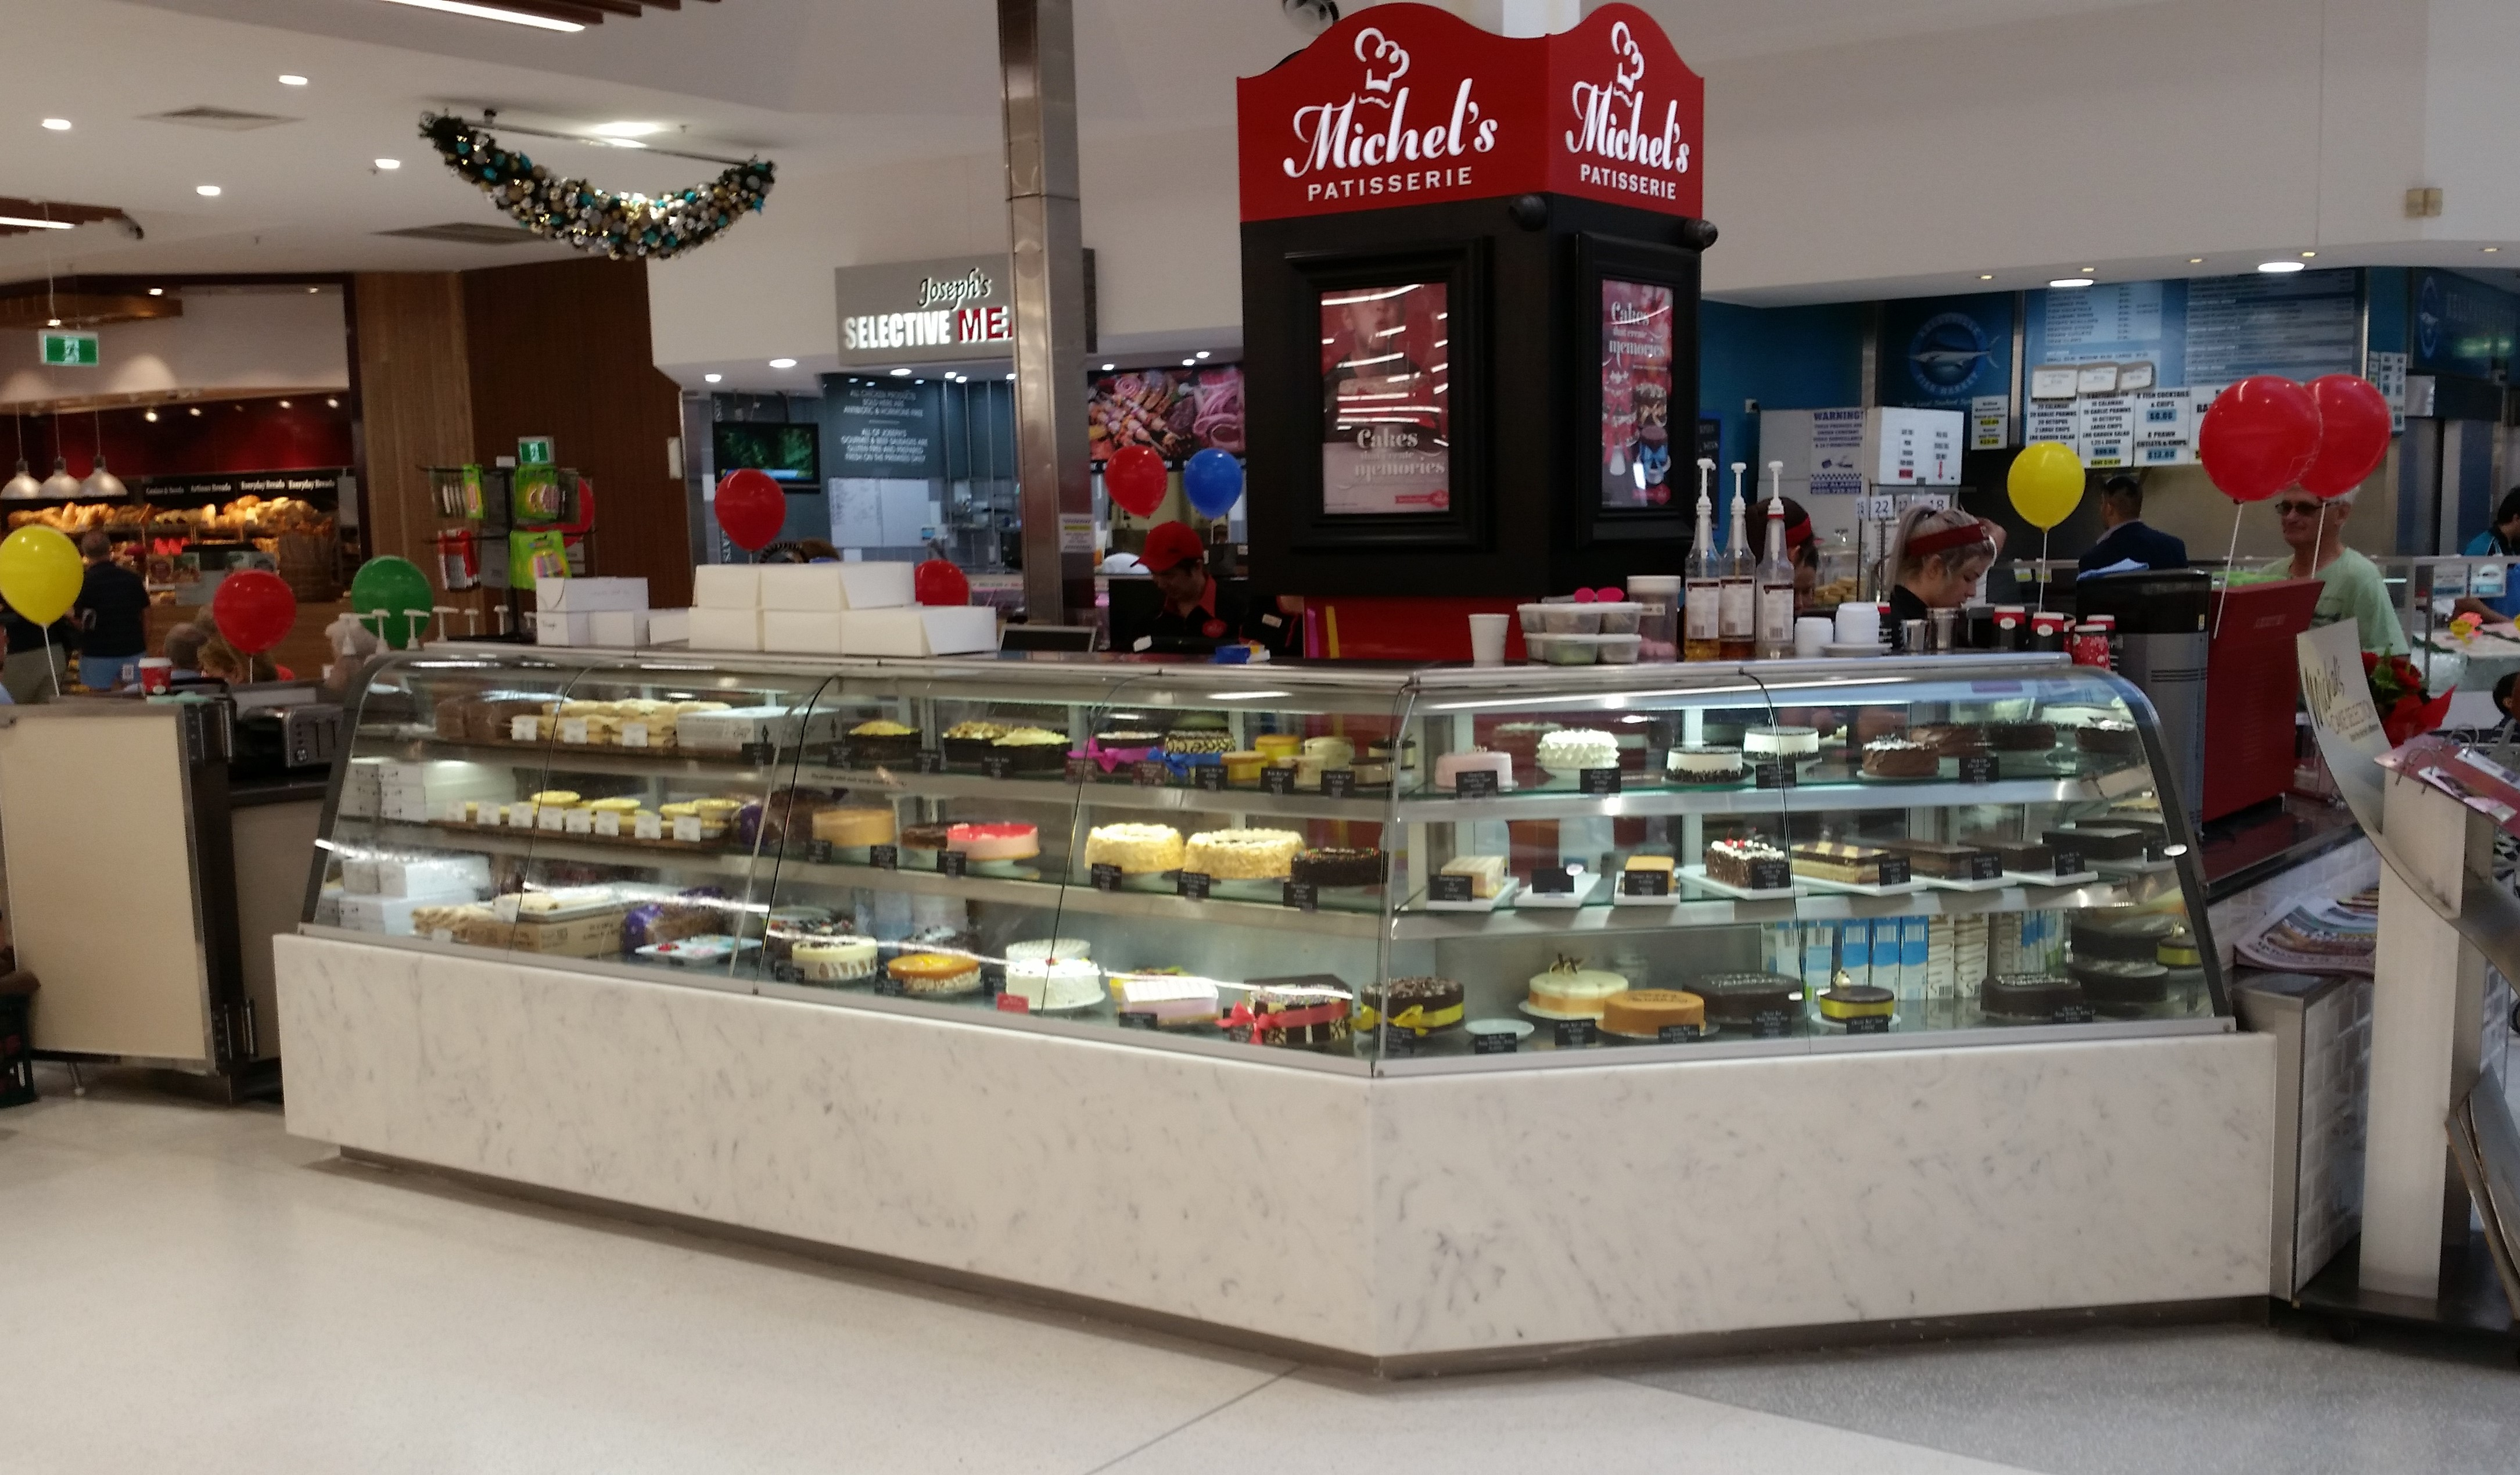 Michels Patisserie kellyville Dec 2015 (6)